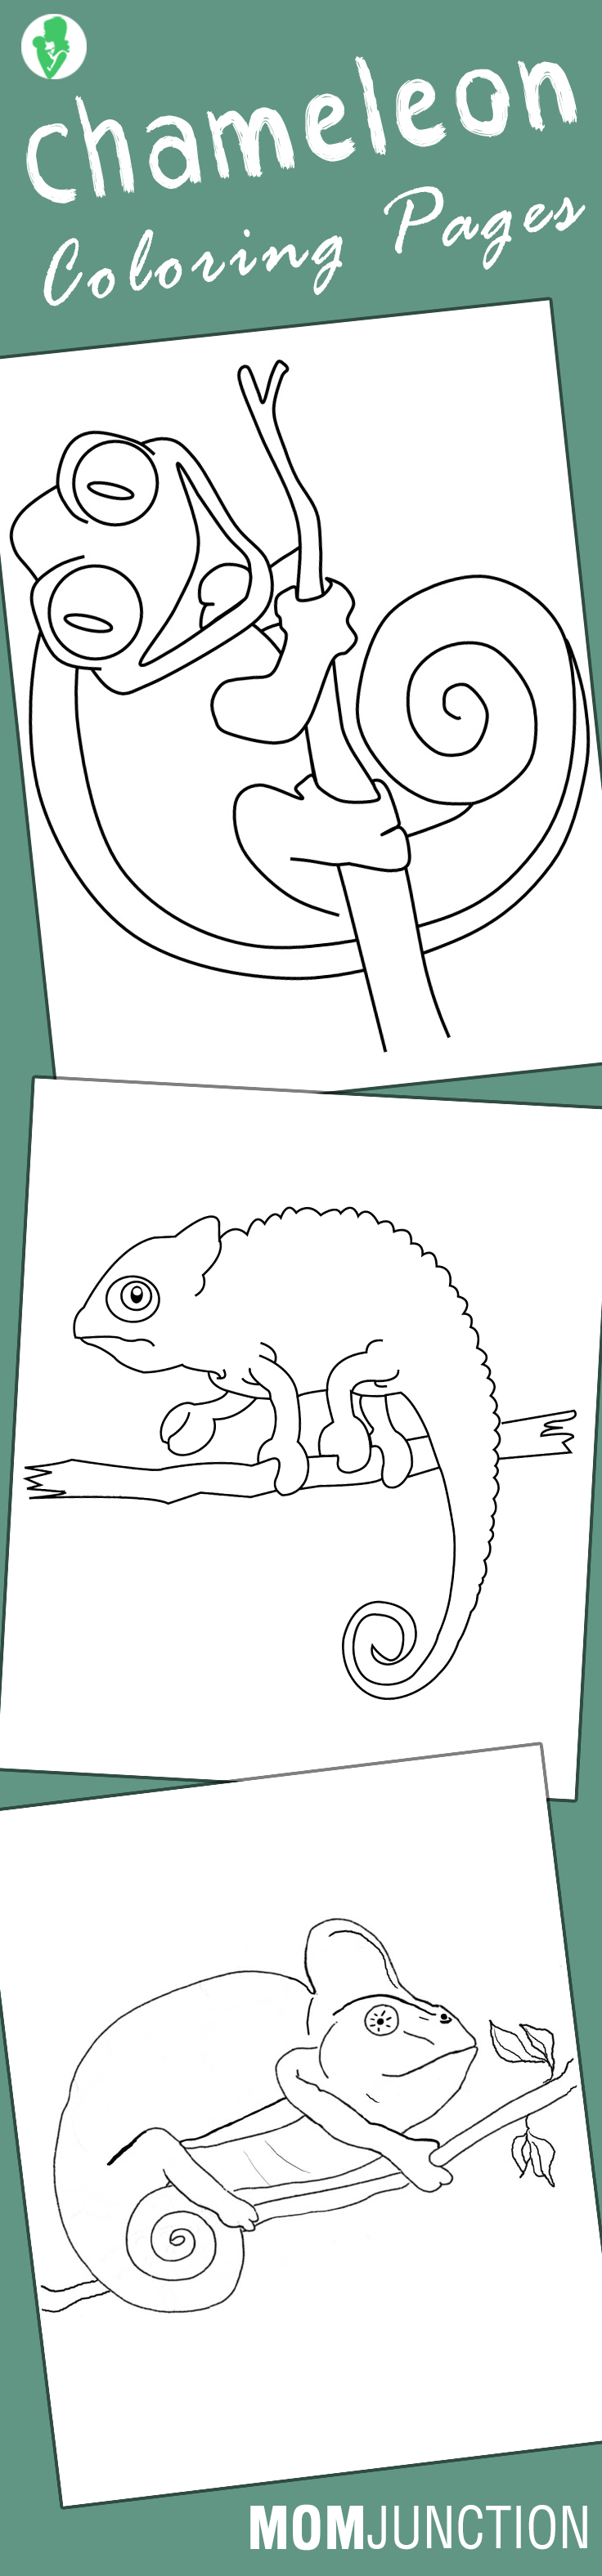 Chameleon Coloring Pages - Free Printables | Laser, Terapia y Colorear